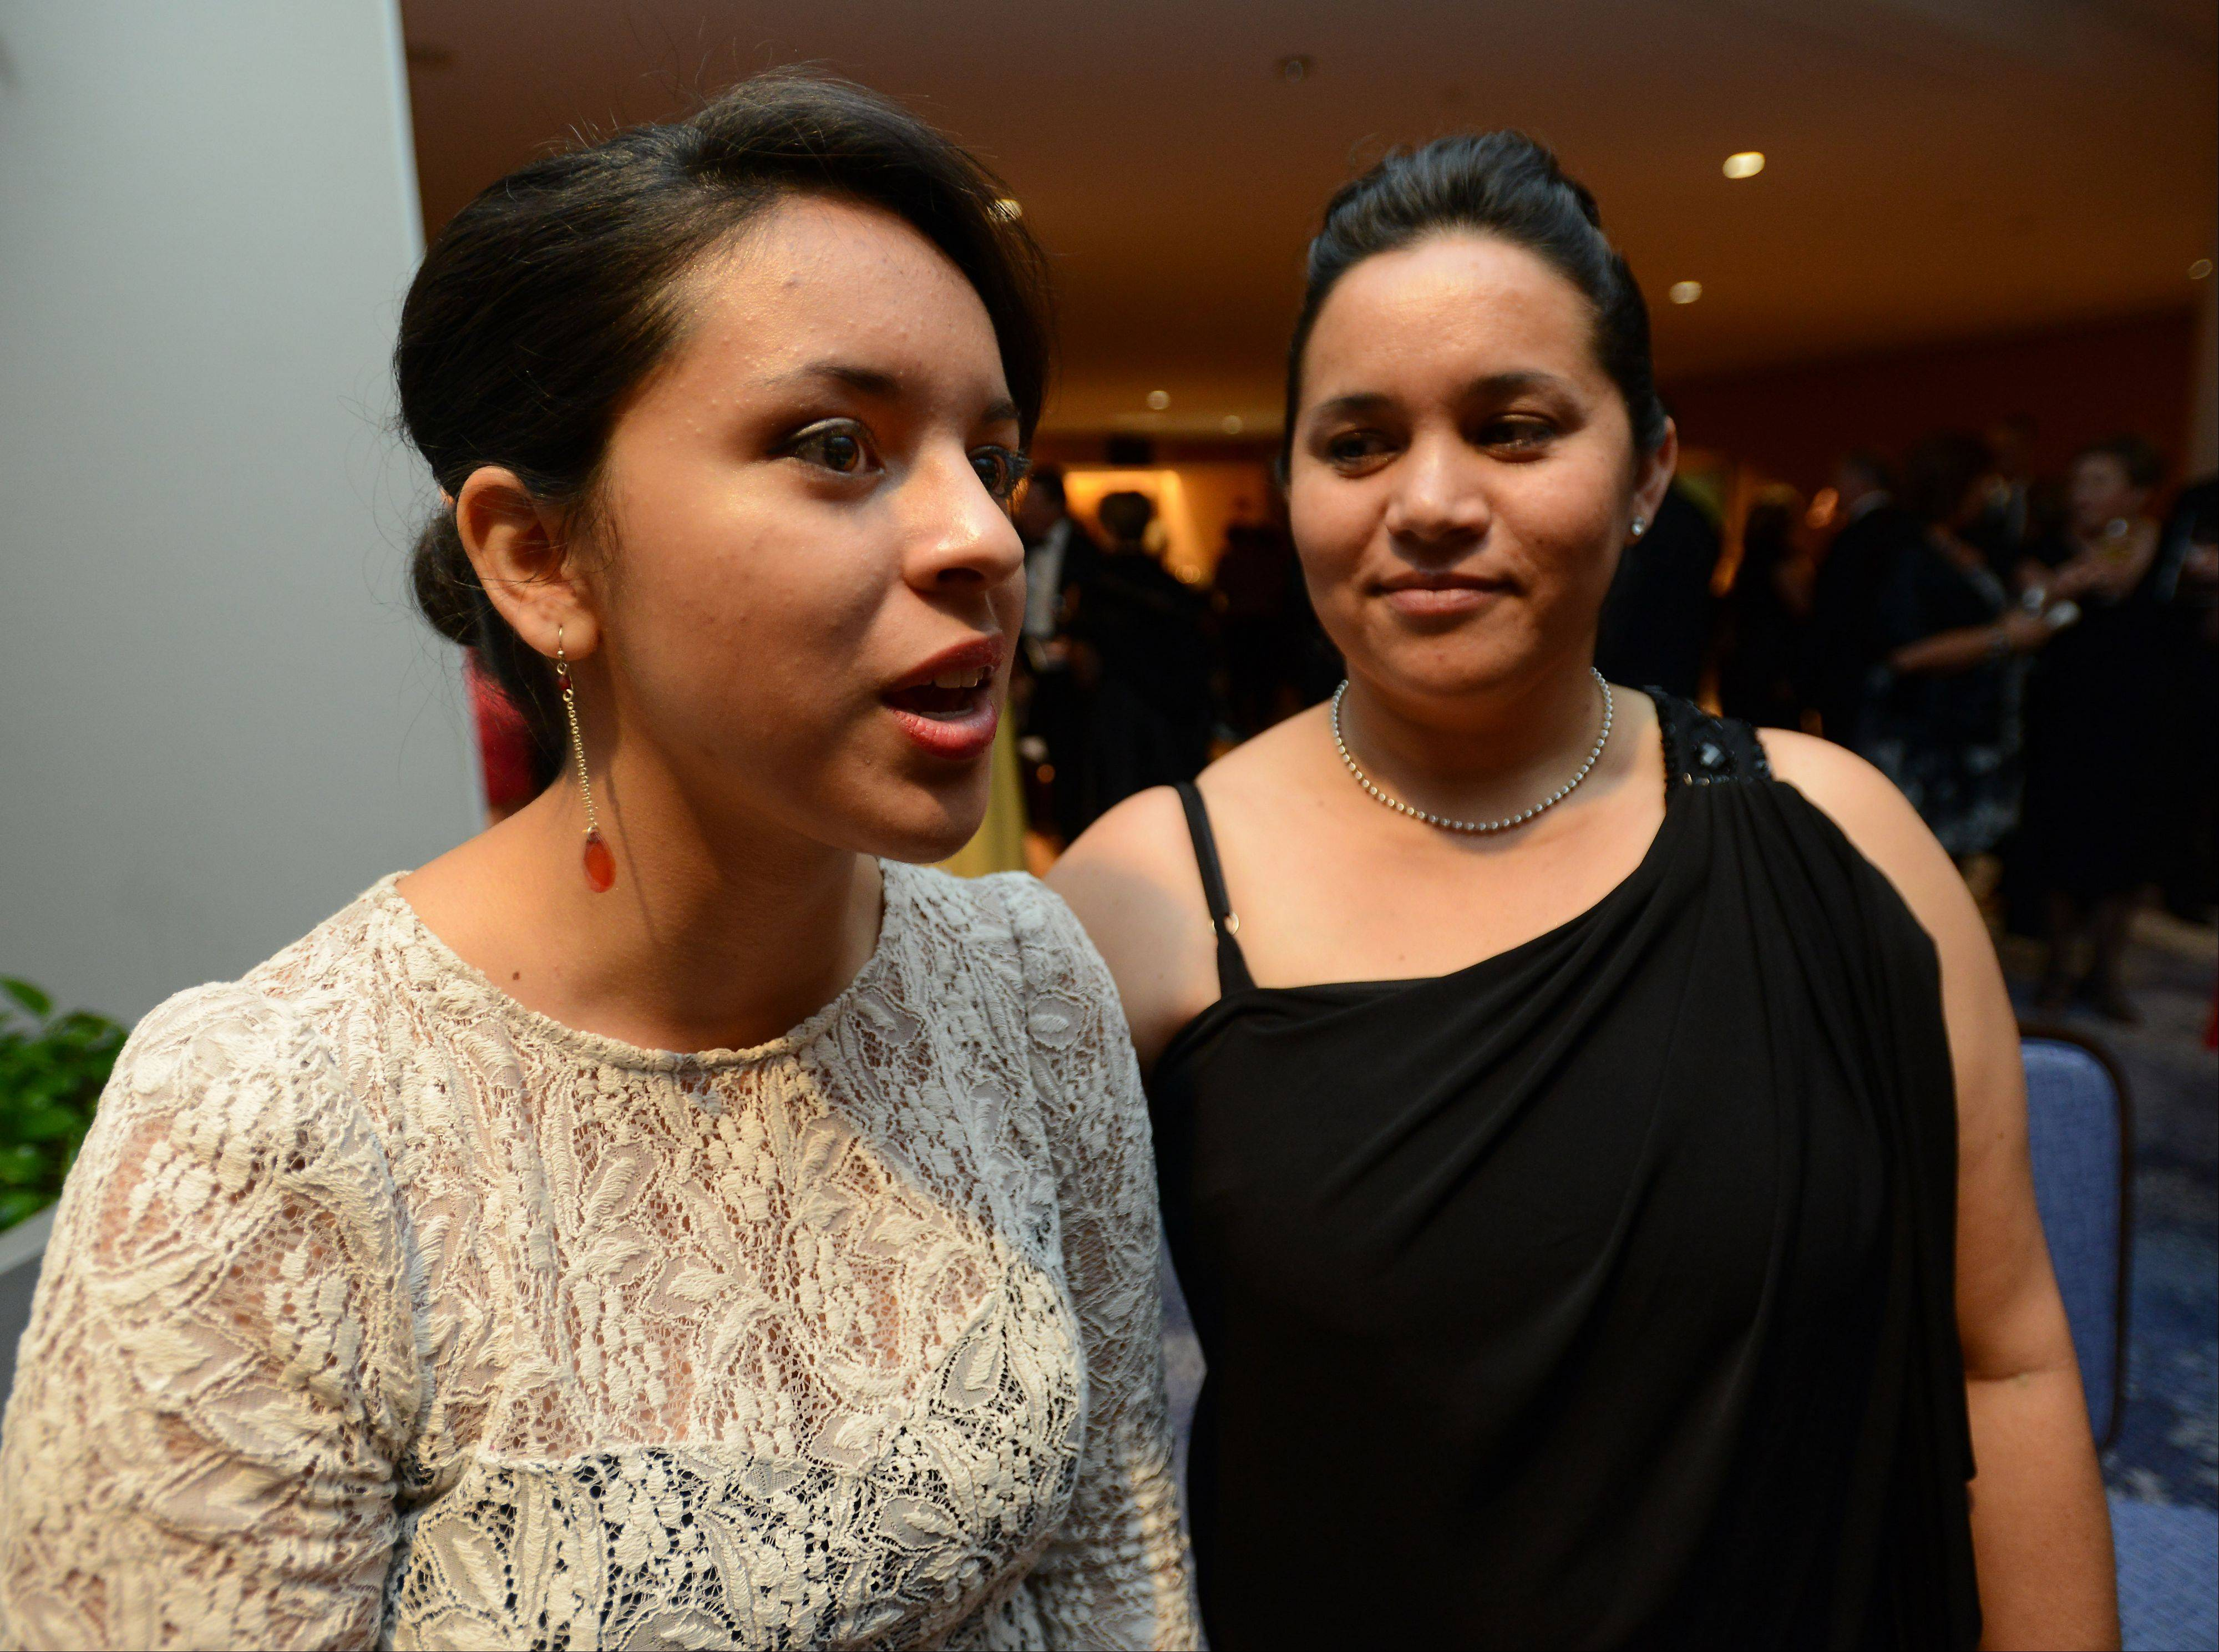 Elisa Galvan, left, and her mother, Maricela Alva, were at last year's President's Ball gala fundraiser for the Harper College Educational Foundation.